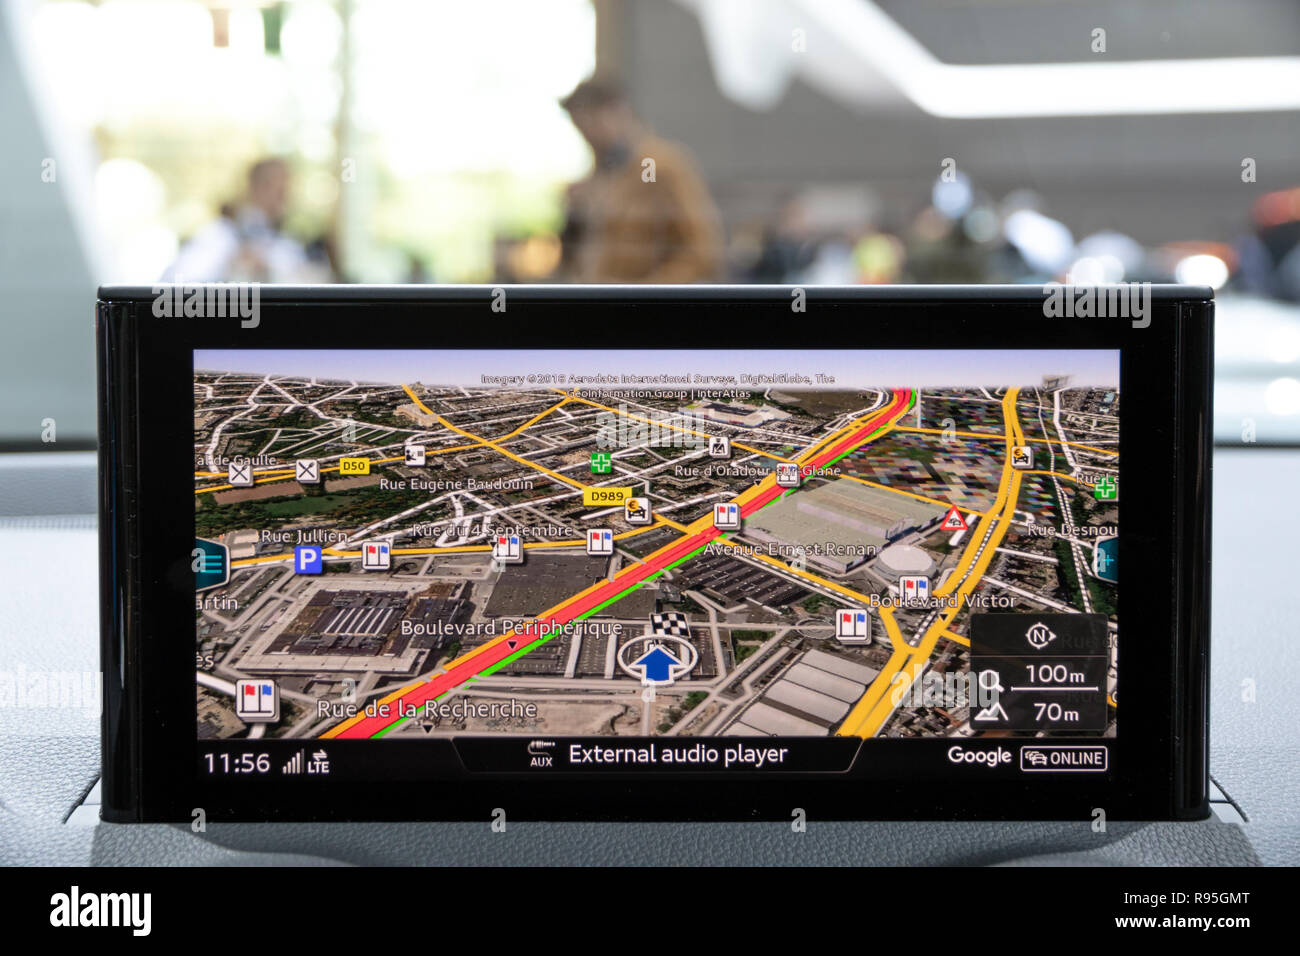 PARIS - OCT 3, 2018: Navigation consule on the dashboard of an Audi A6 car showcased at the Paris Motor Show. - Stock Image